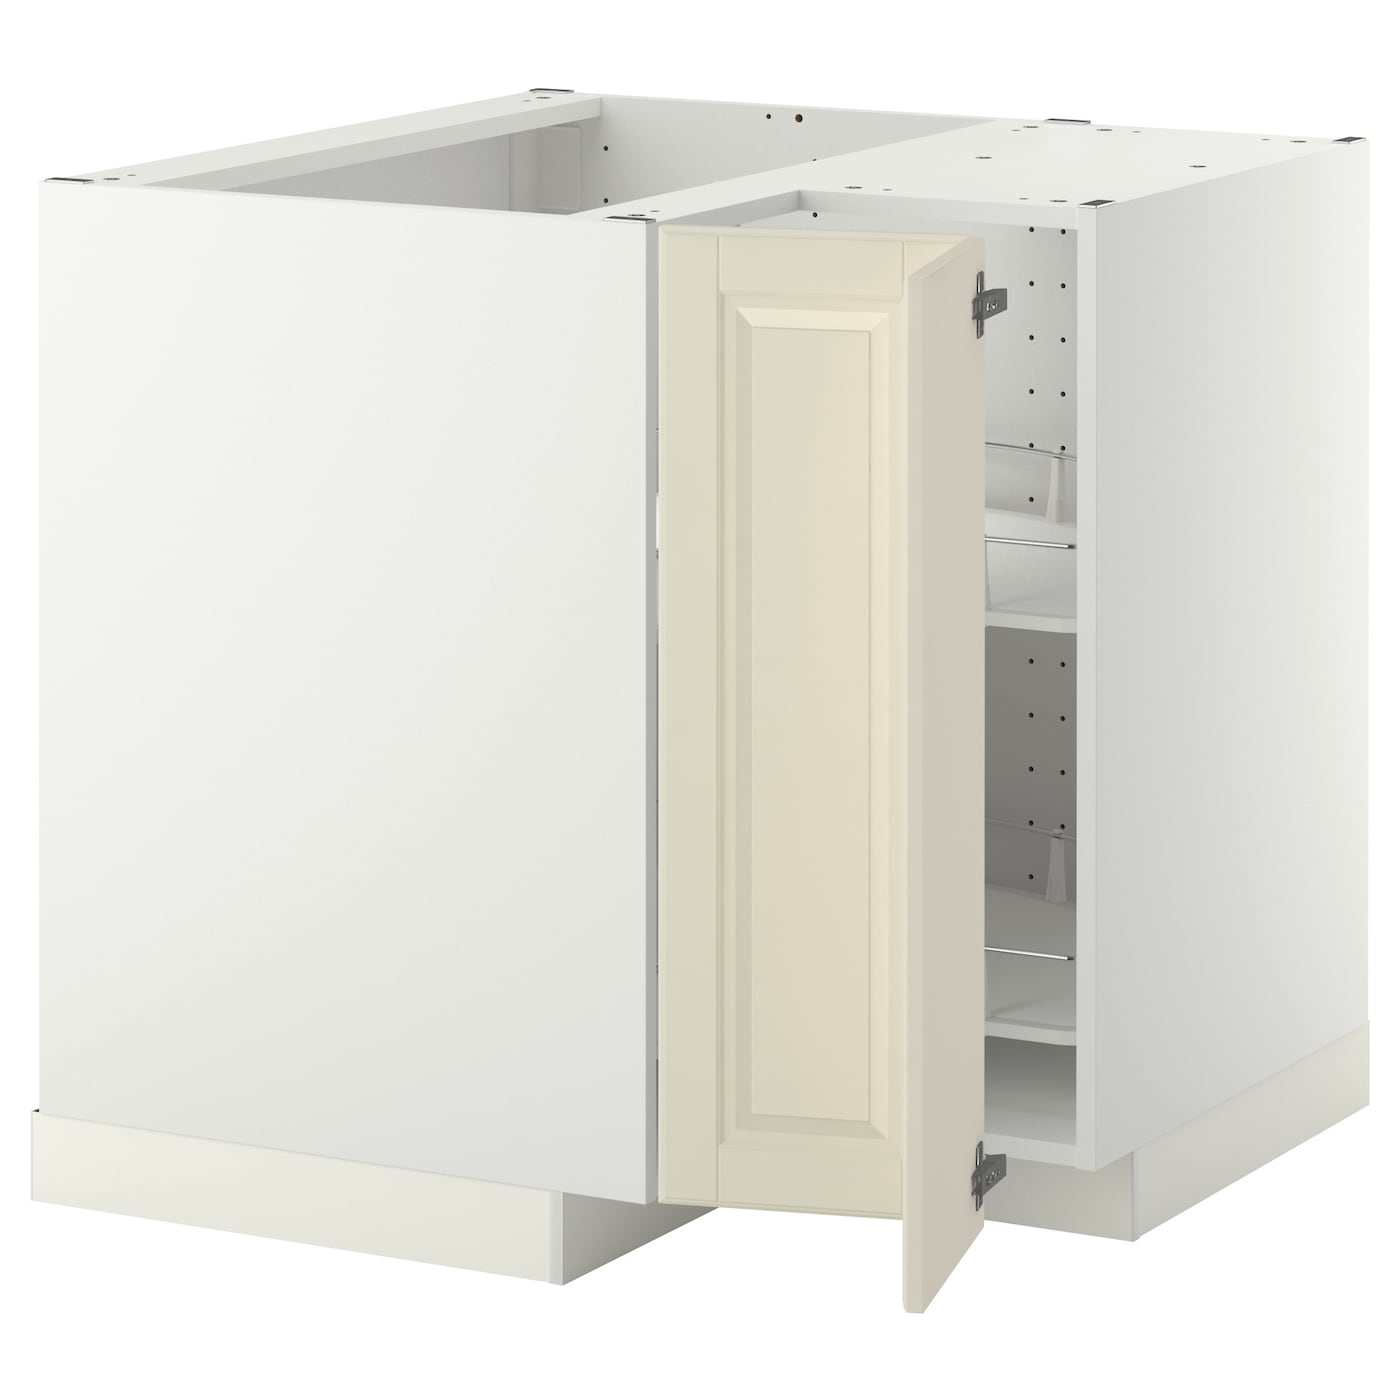 Kitchen Cabinet Supplier Subang: METOD Corner Base Cabinet With Carousel White/bodbyn Off